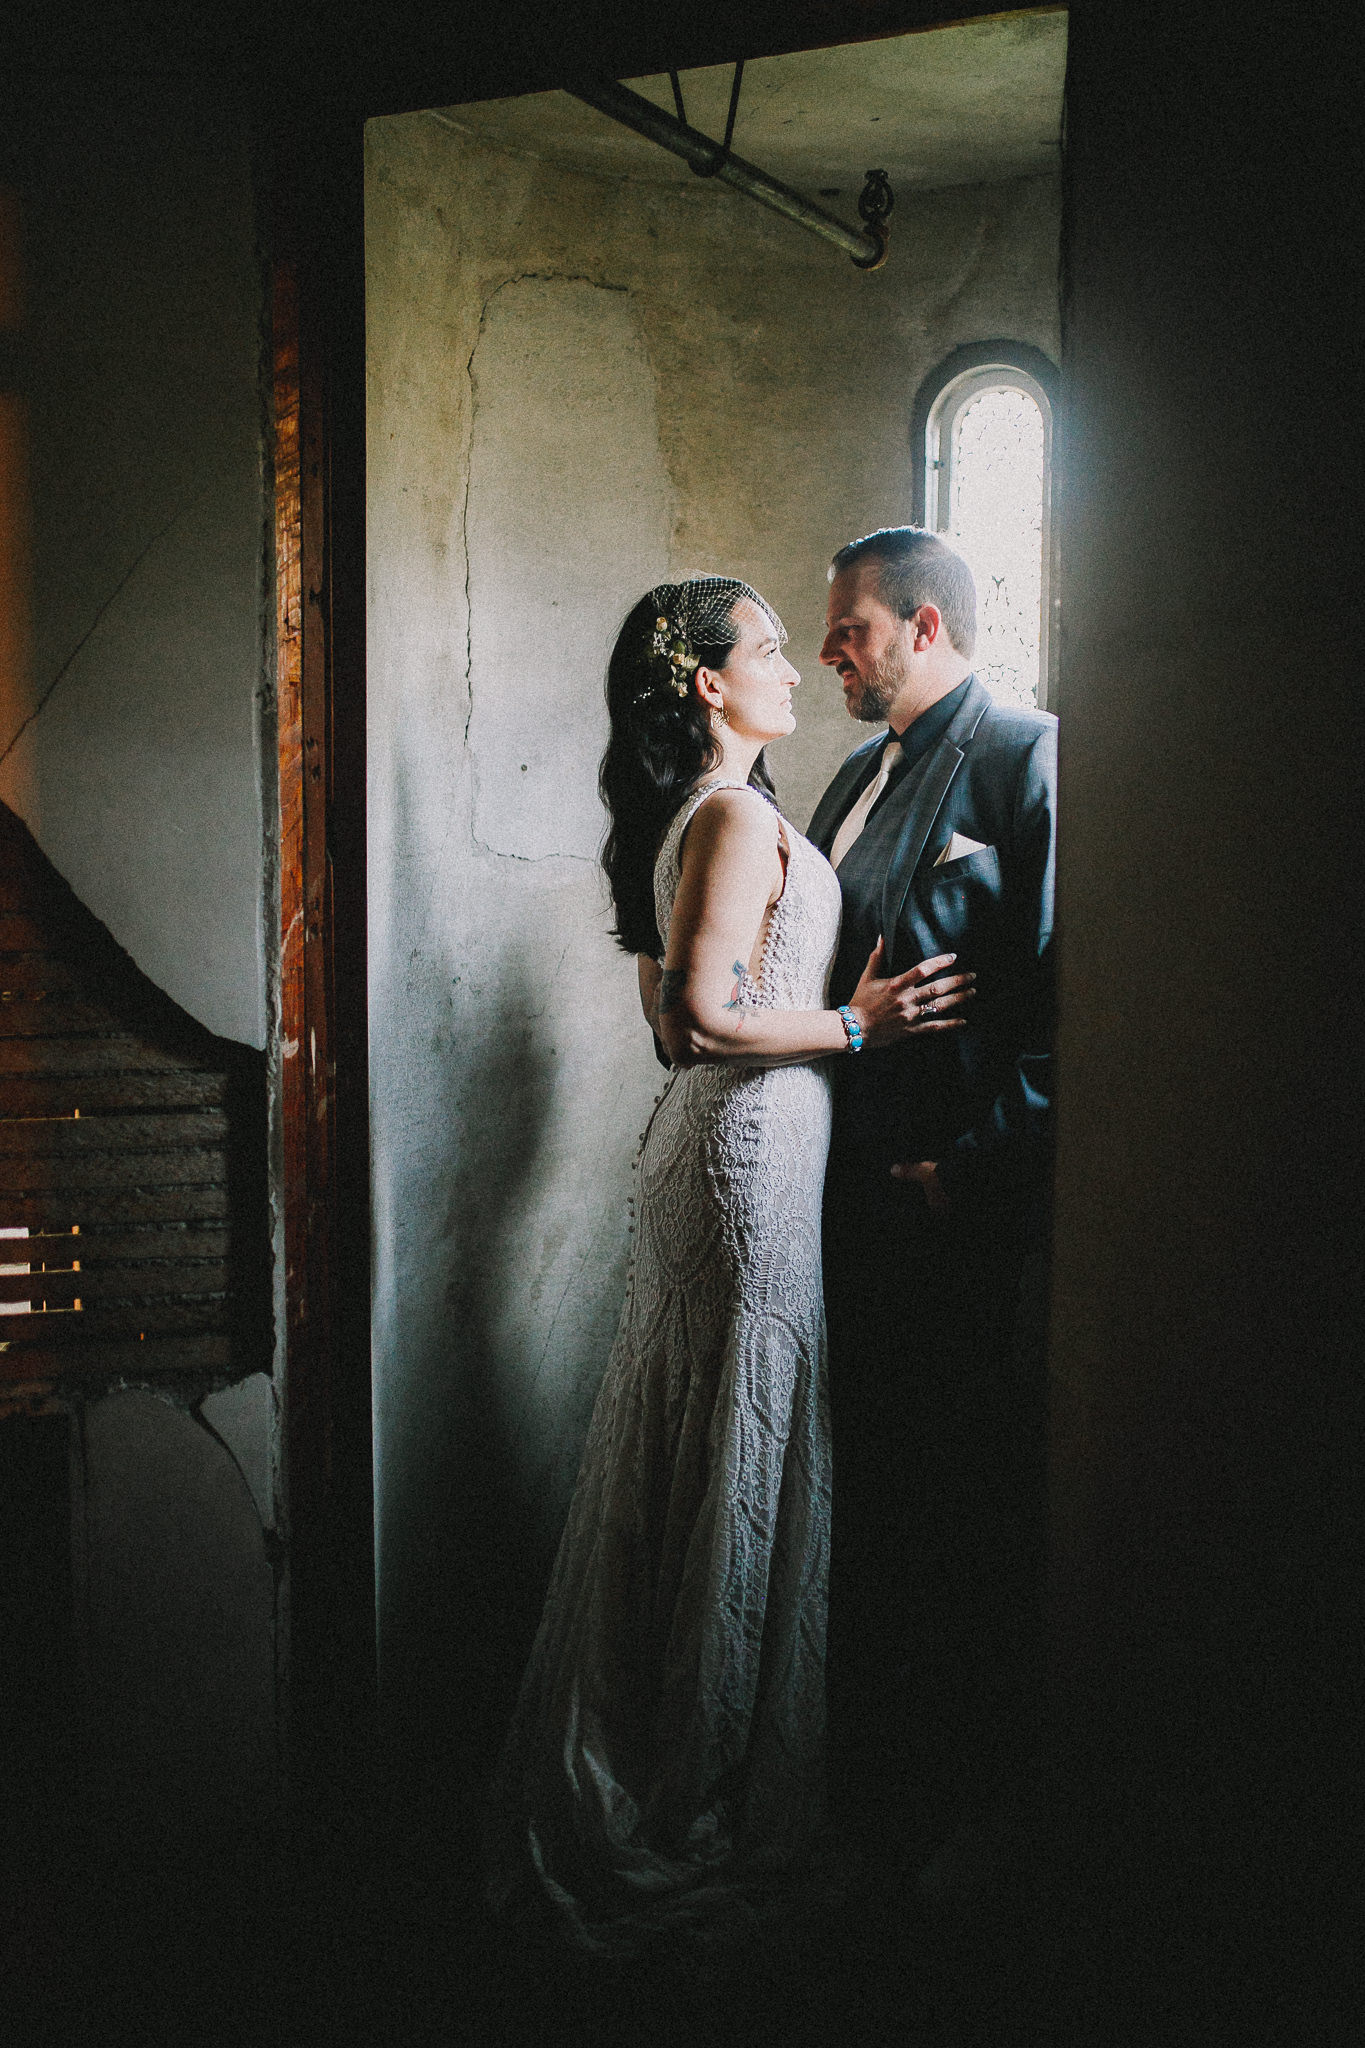 Archer Inspired Photography Sara and Aaron Winchester Mystery House NorCal San Jose California Wedding Photographer-363.jpg